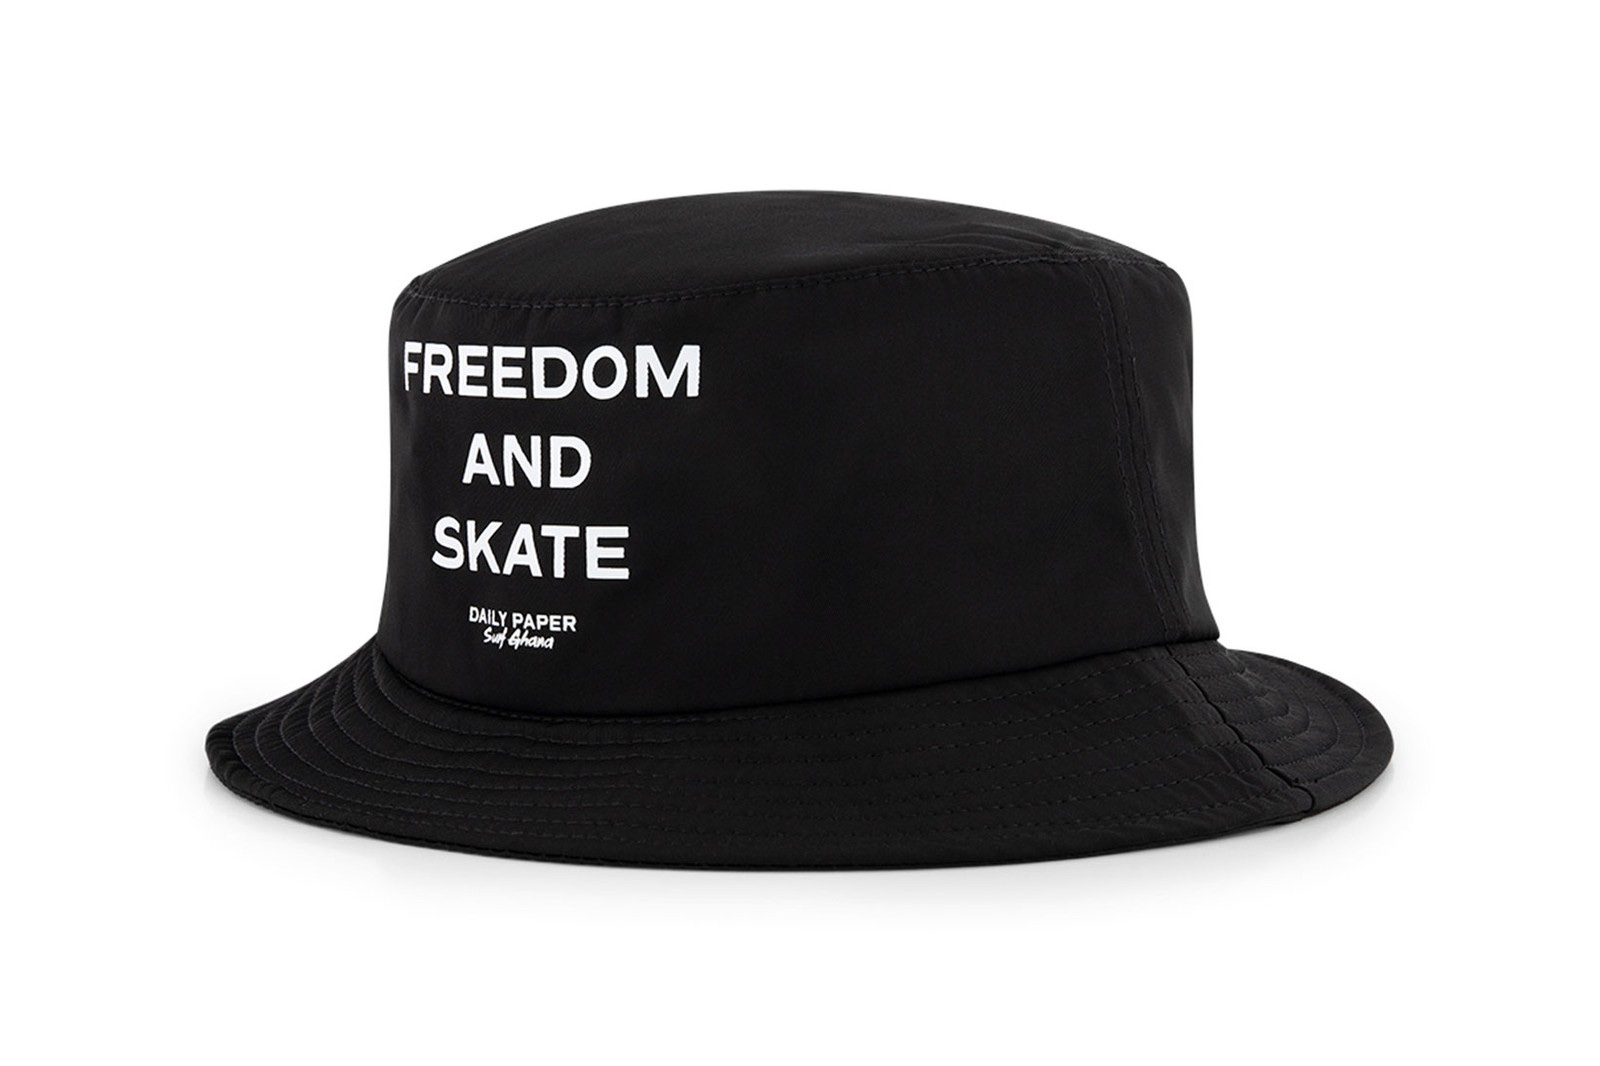 Daily Paper Surf Ghana bucket hat